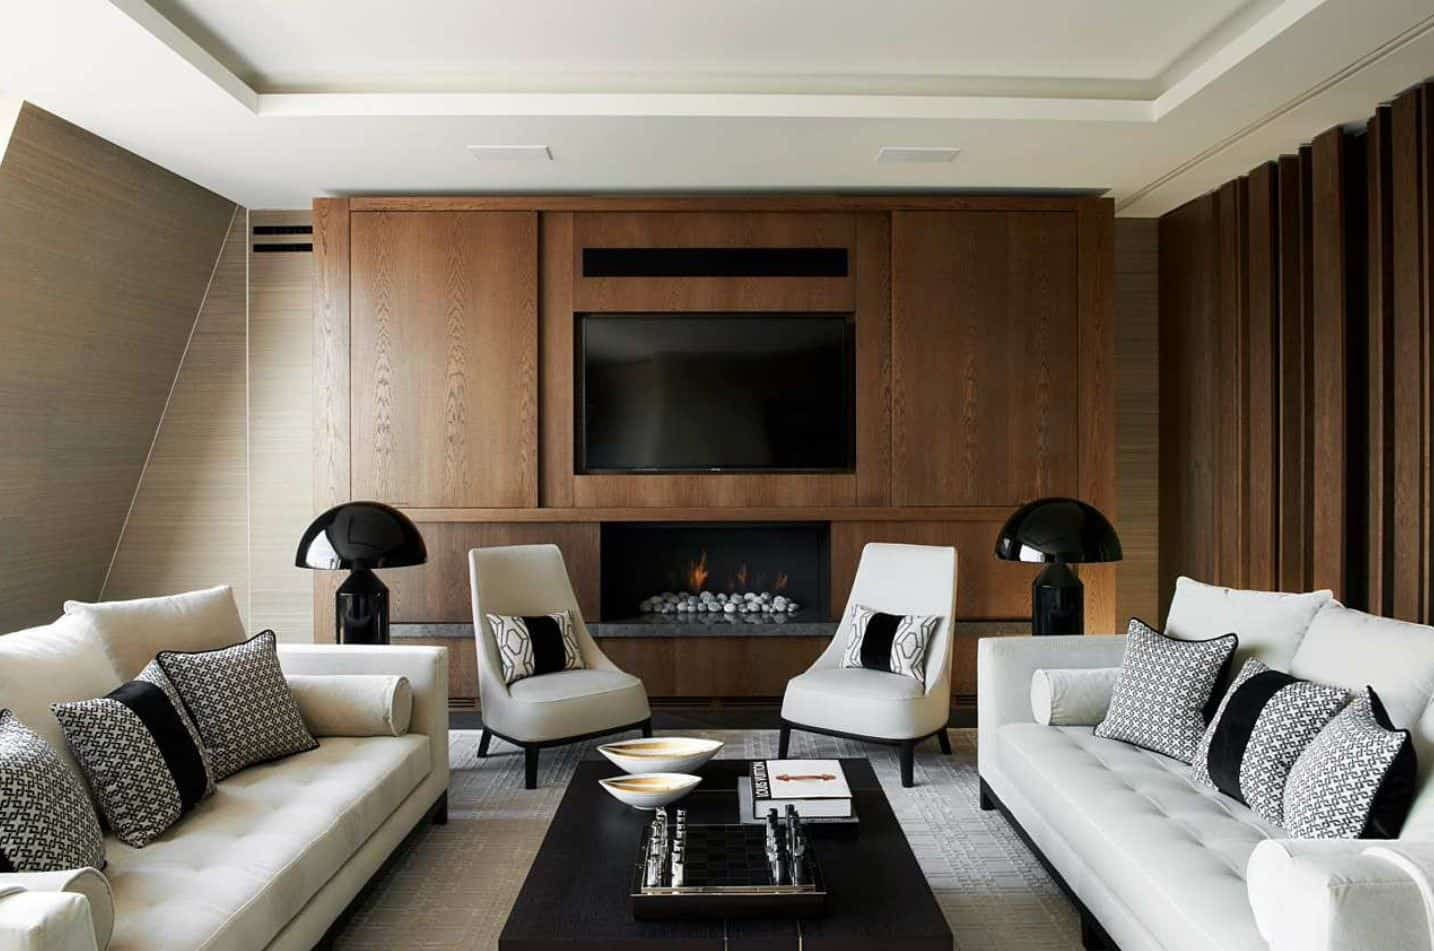 A pair of gray chairs lighted by black table lamps sit in front of the modern fireplace and television in this living room showcasing tufted sofas and dark wood coffee table.